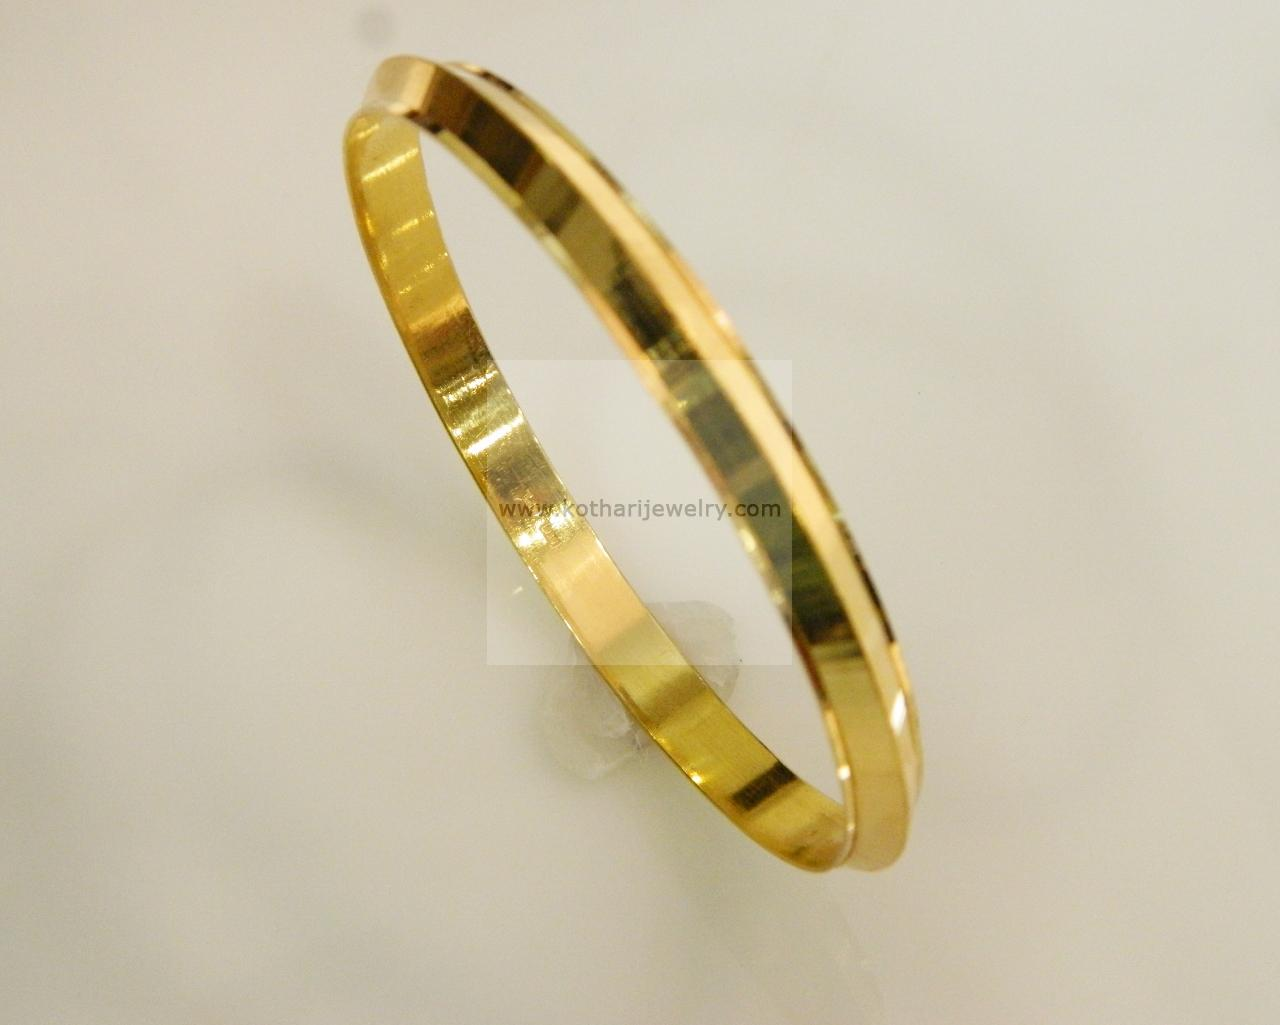 bangles browns image bracelet plain bangle family jewellers from carat gold